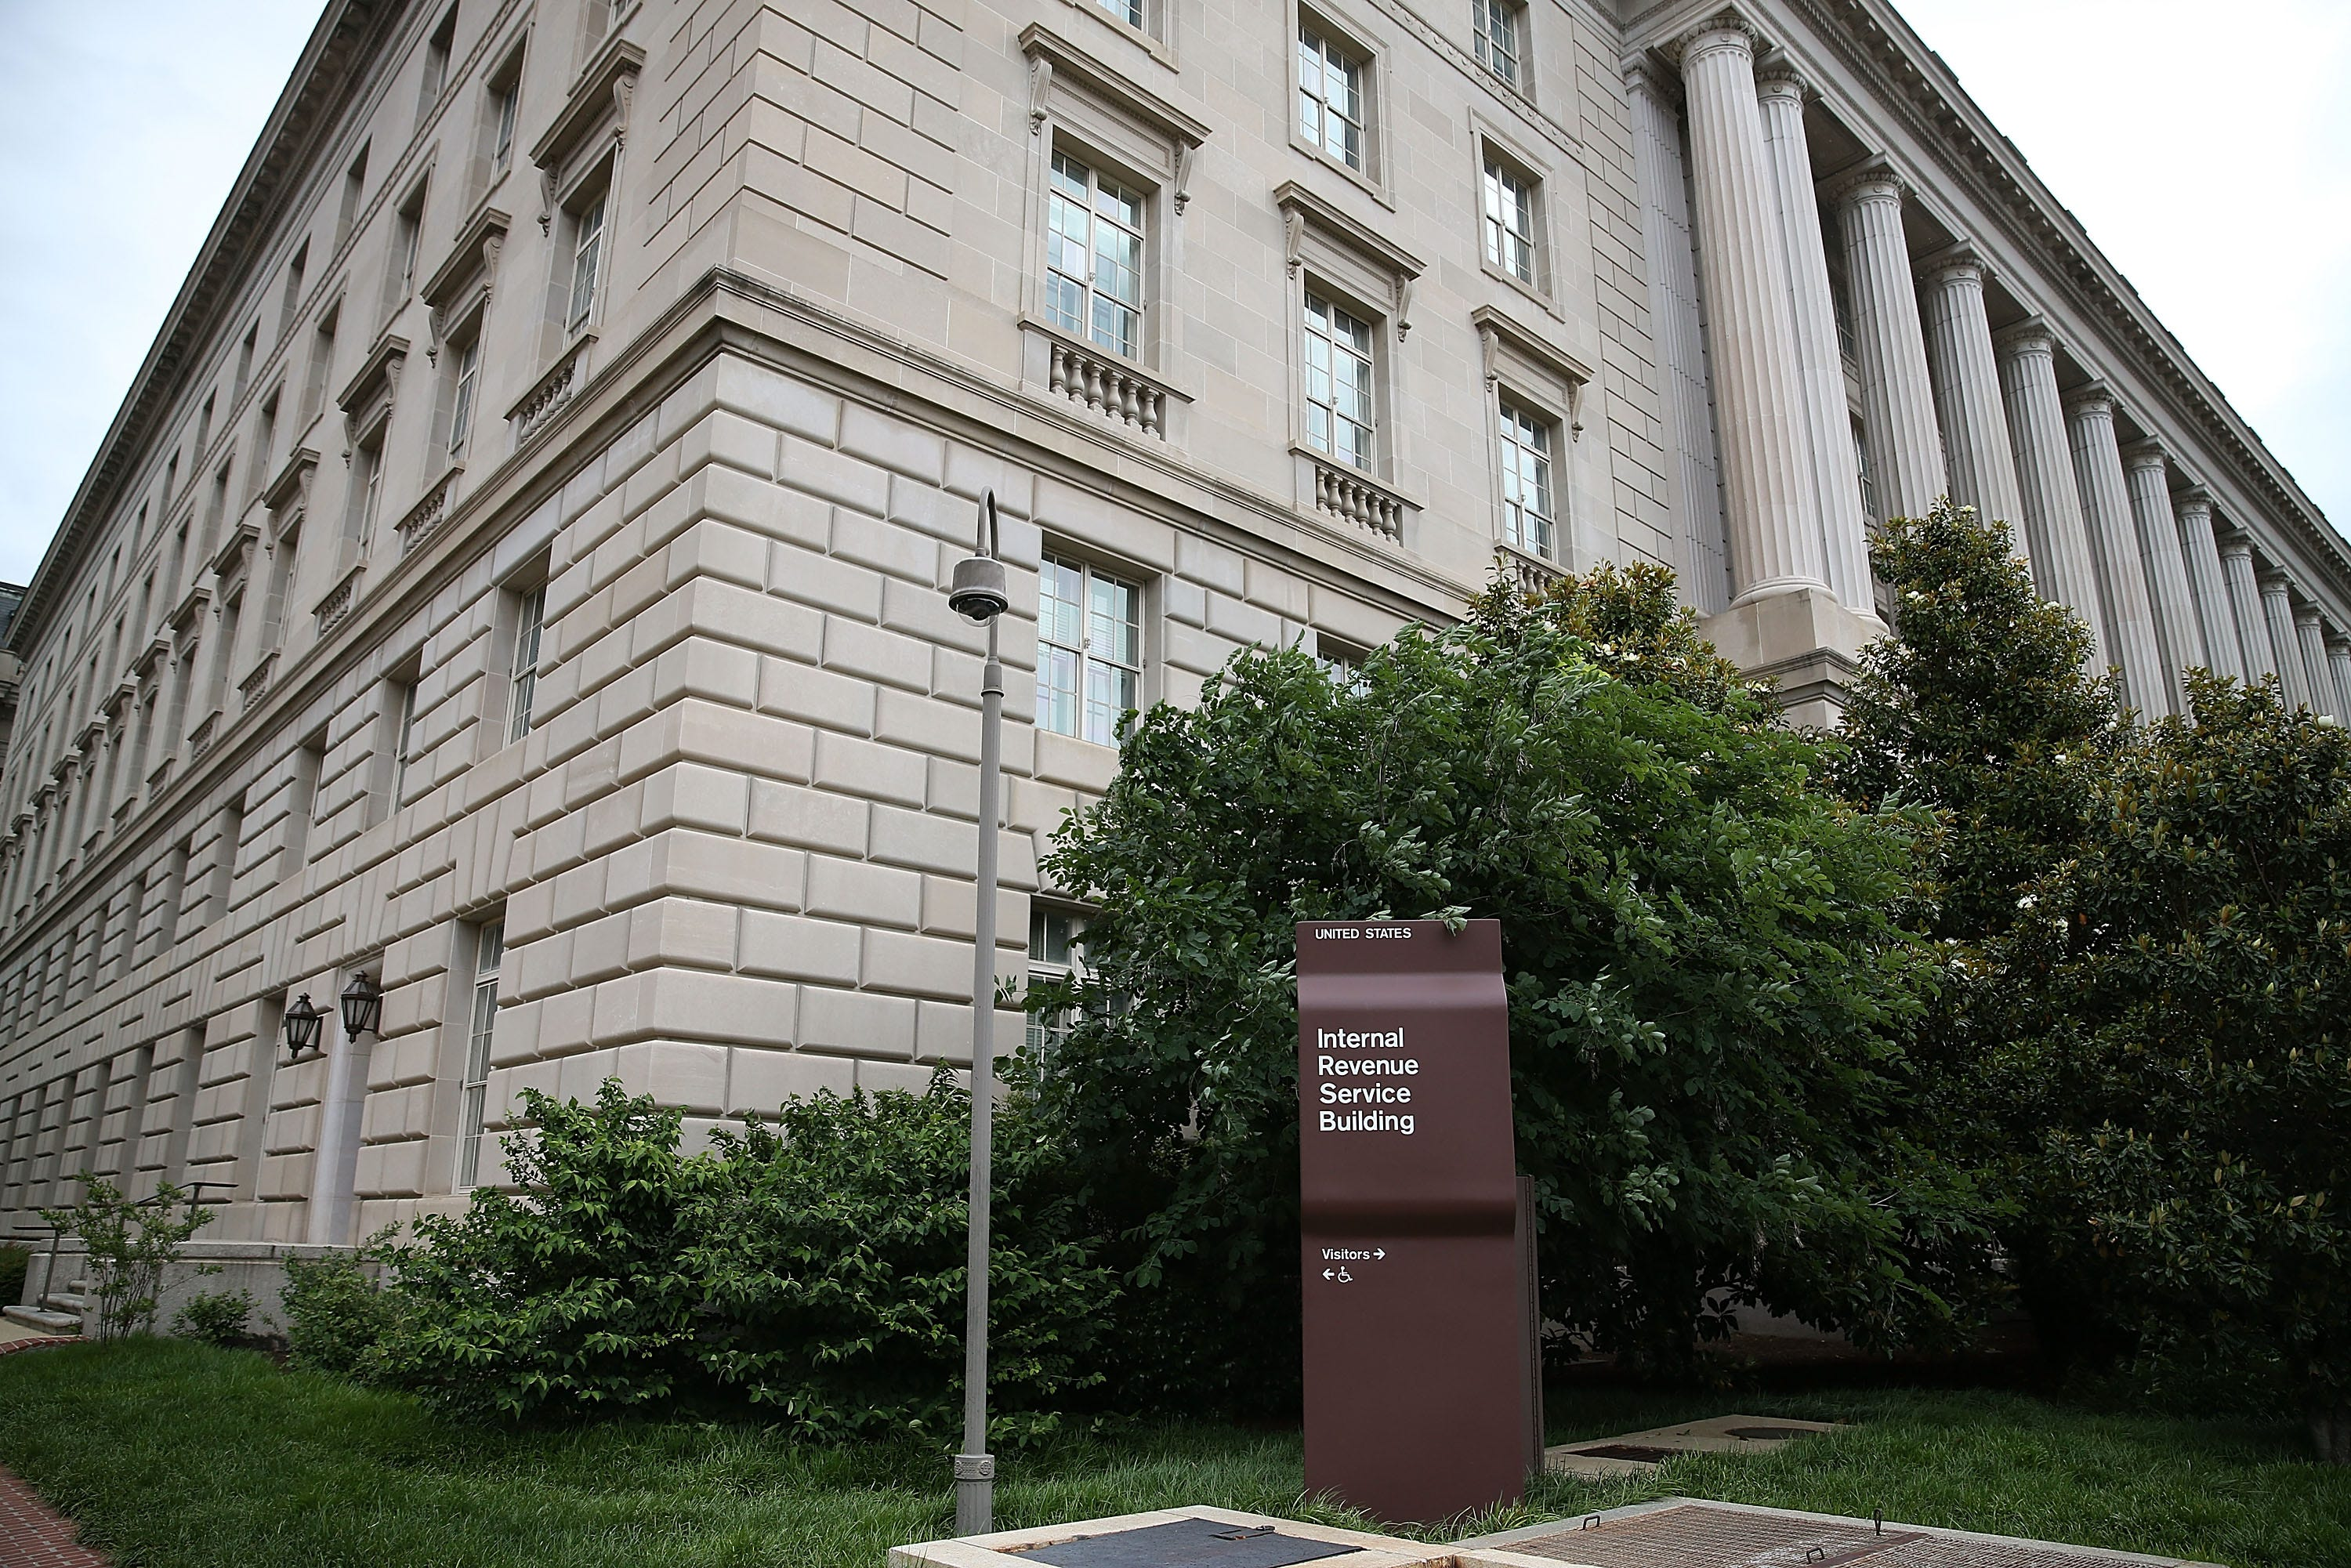 Tax refund late? The IRS may owe you interest